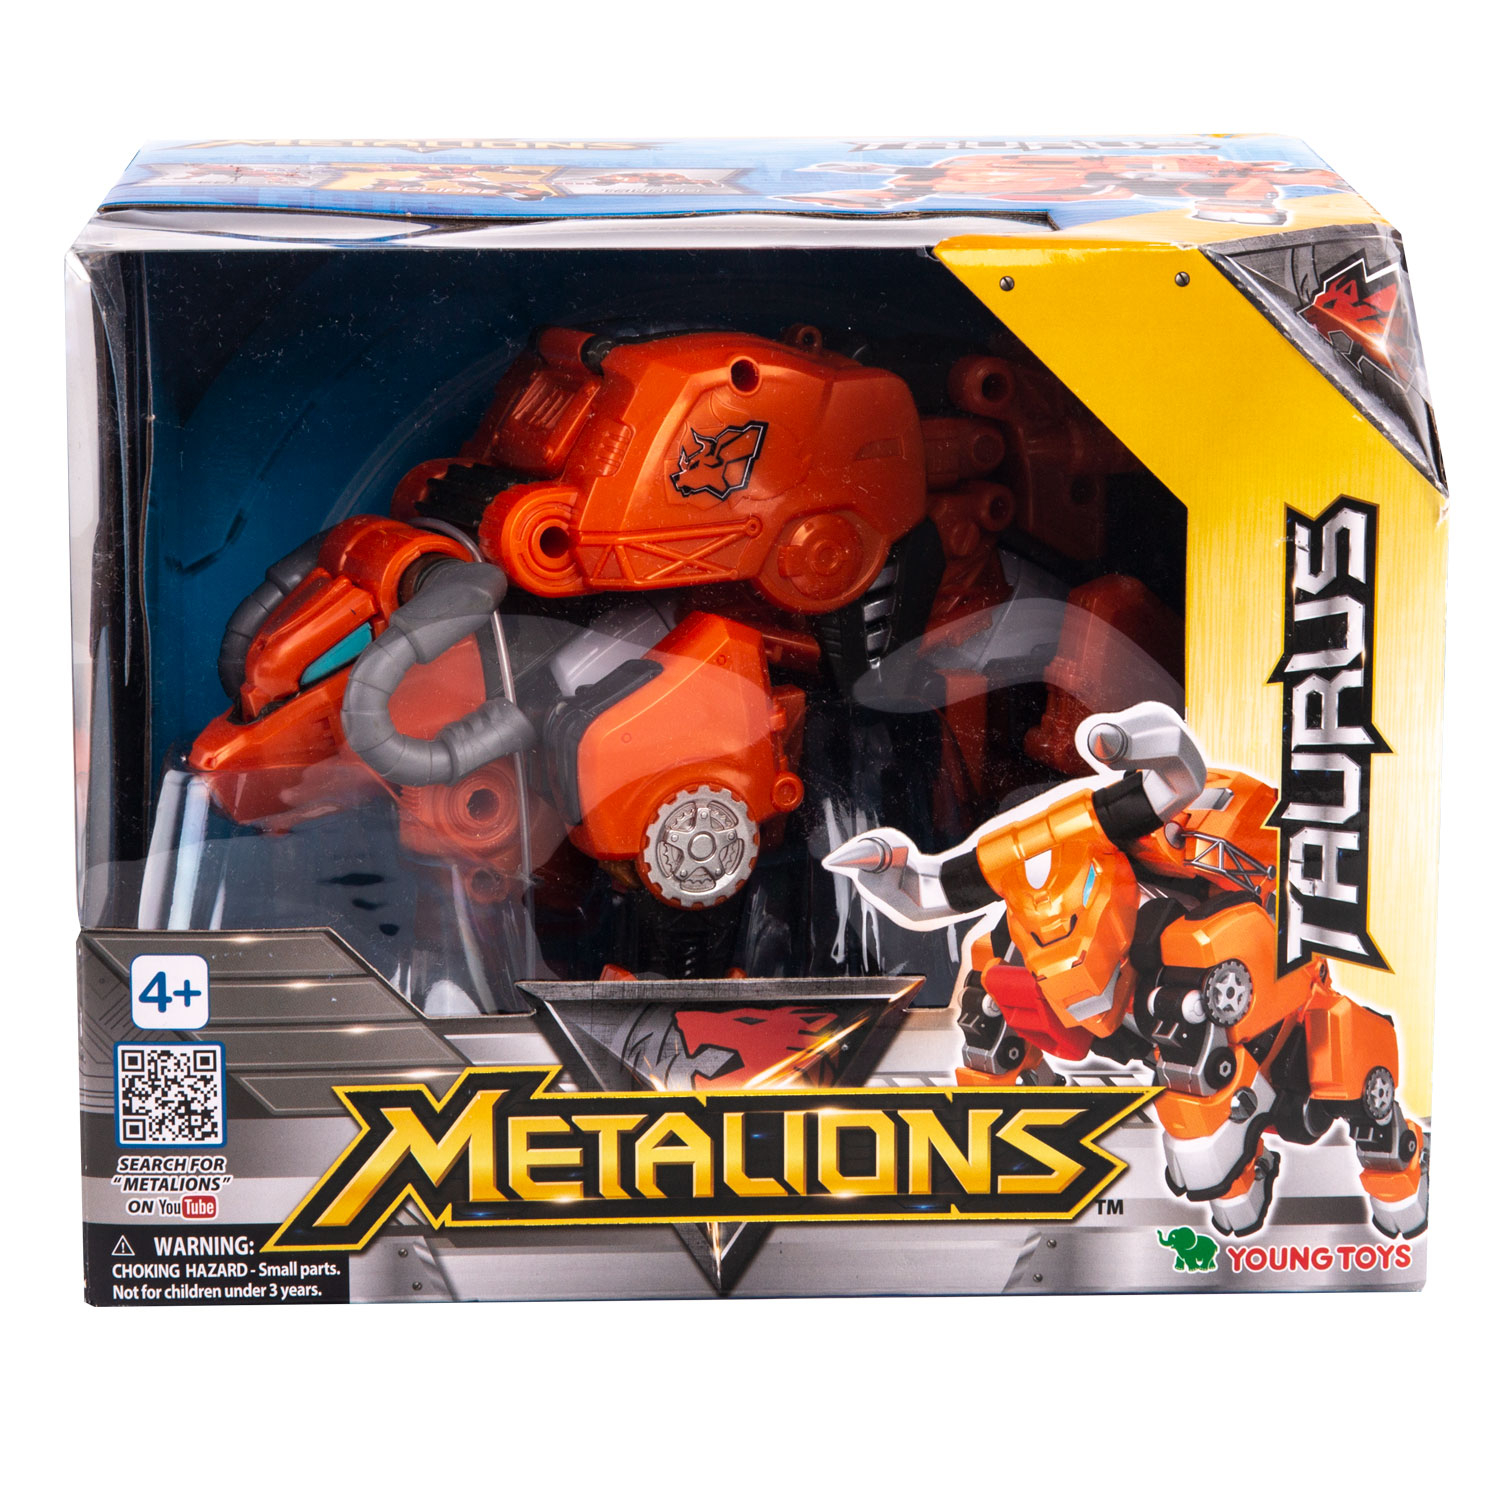 YOUNG TOYS METALIONS Main Taurus Action Figure